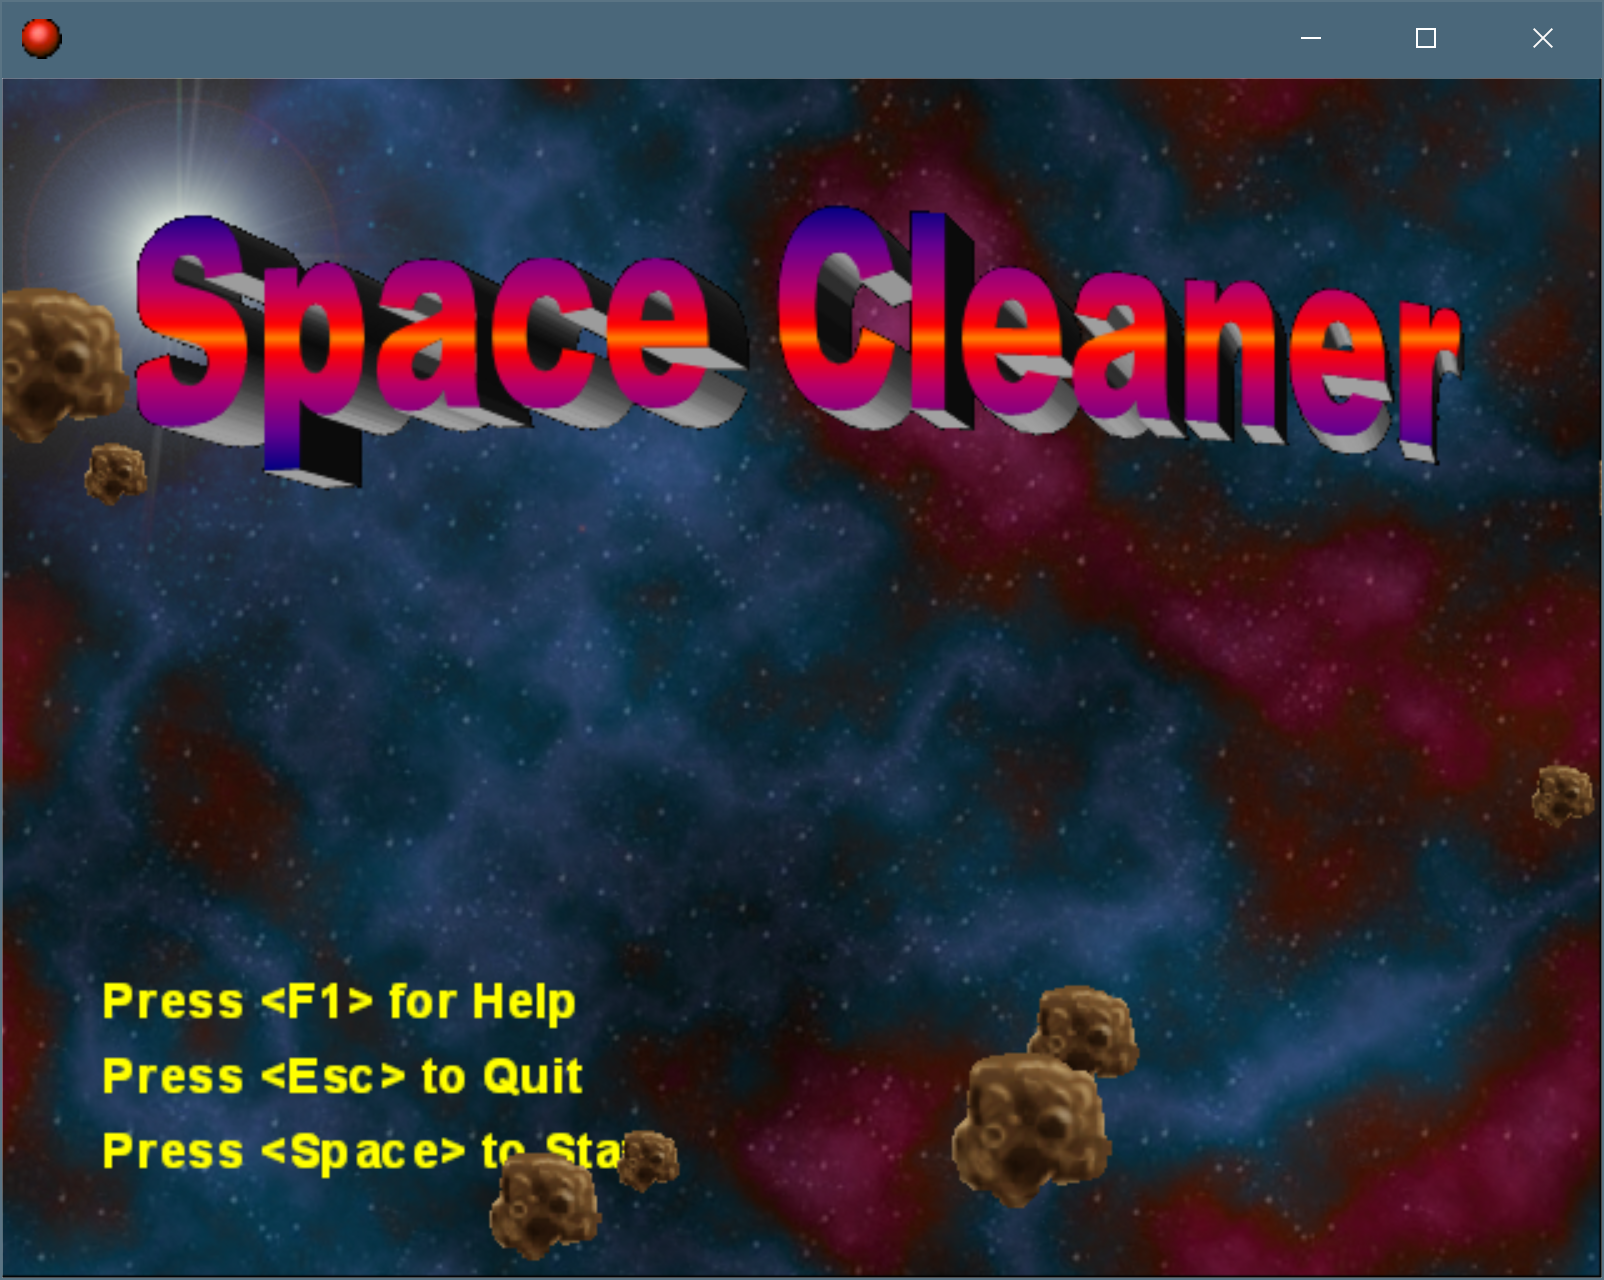 Space Cleaner Image Pad Branch